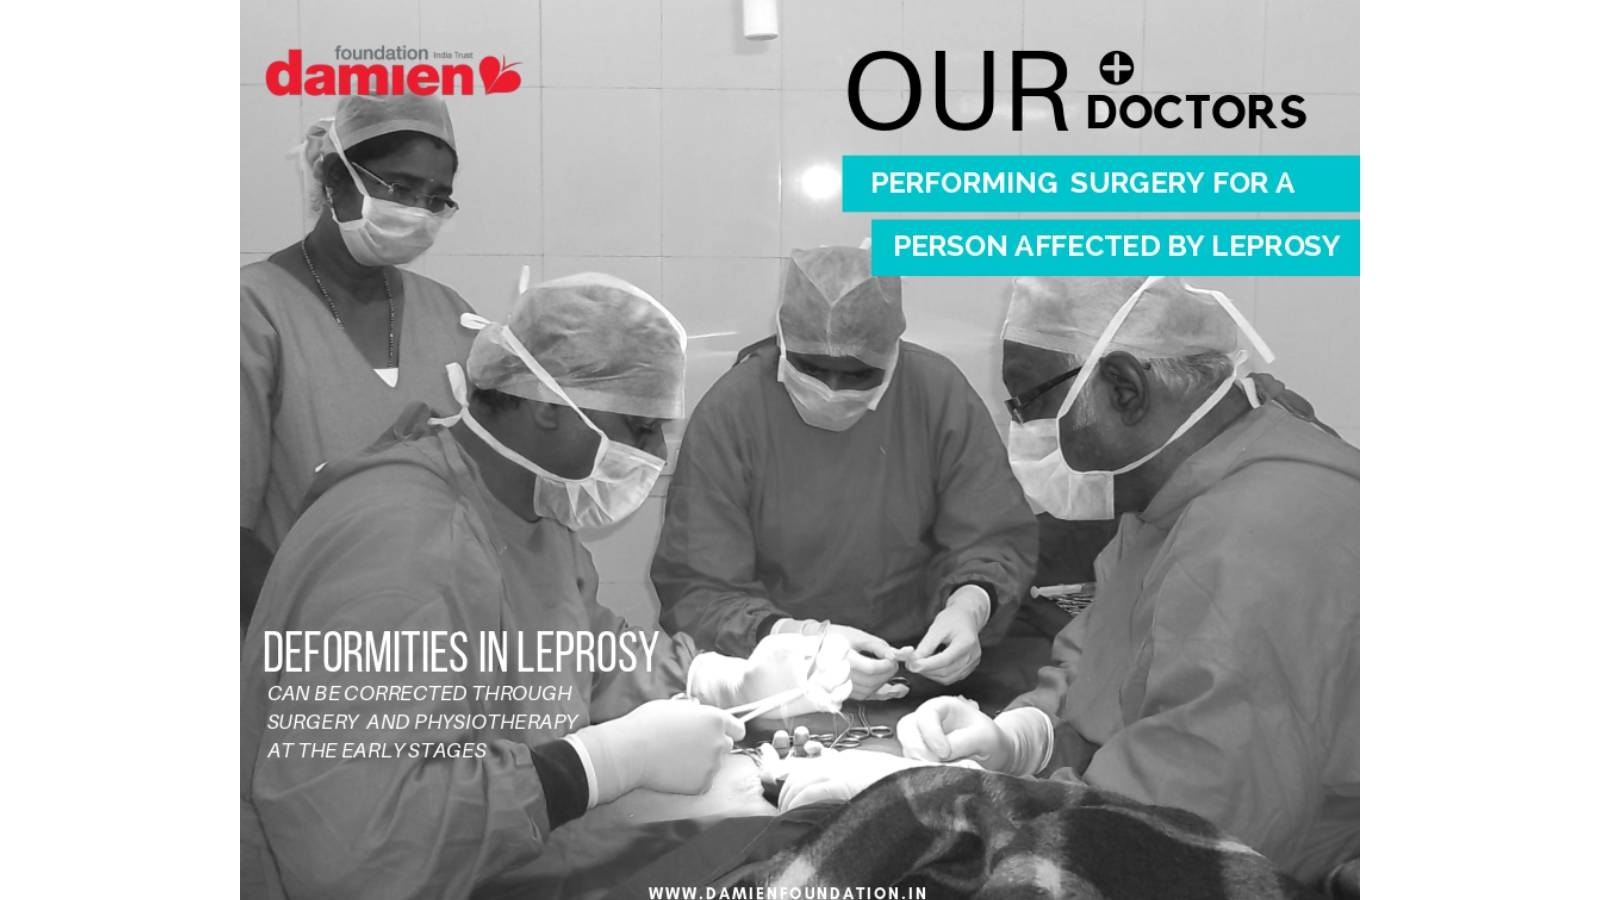 Surgical Support Per Surgery Cost Rs.50,000